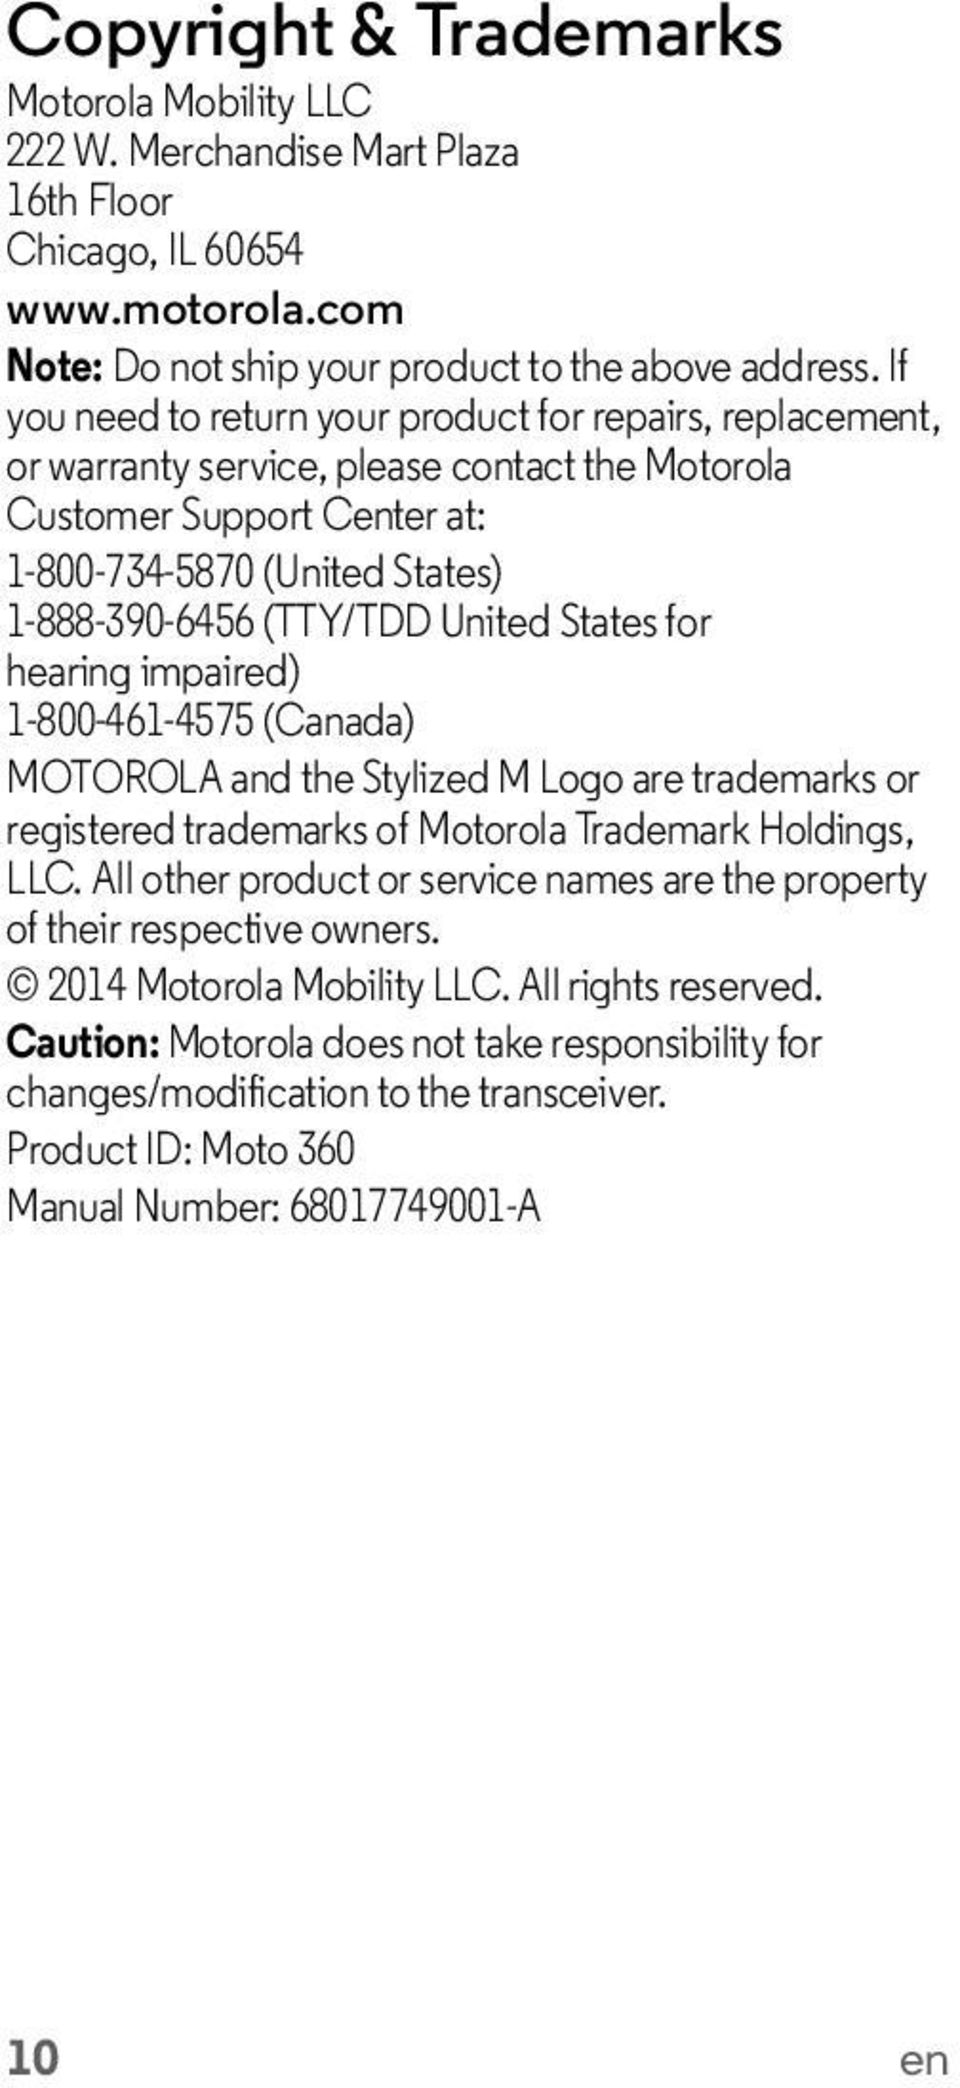 States for hearing impaired) 1-800-461-4575 (Canada) MOTOROLA and the Stylized M Logo are trademarks or registered trademarks of Motorola Trademark Holdings, LLC.